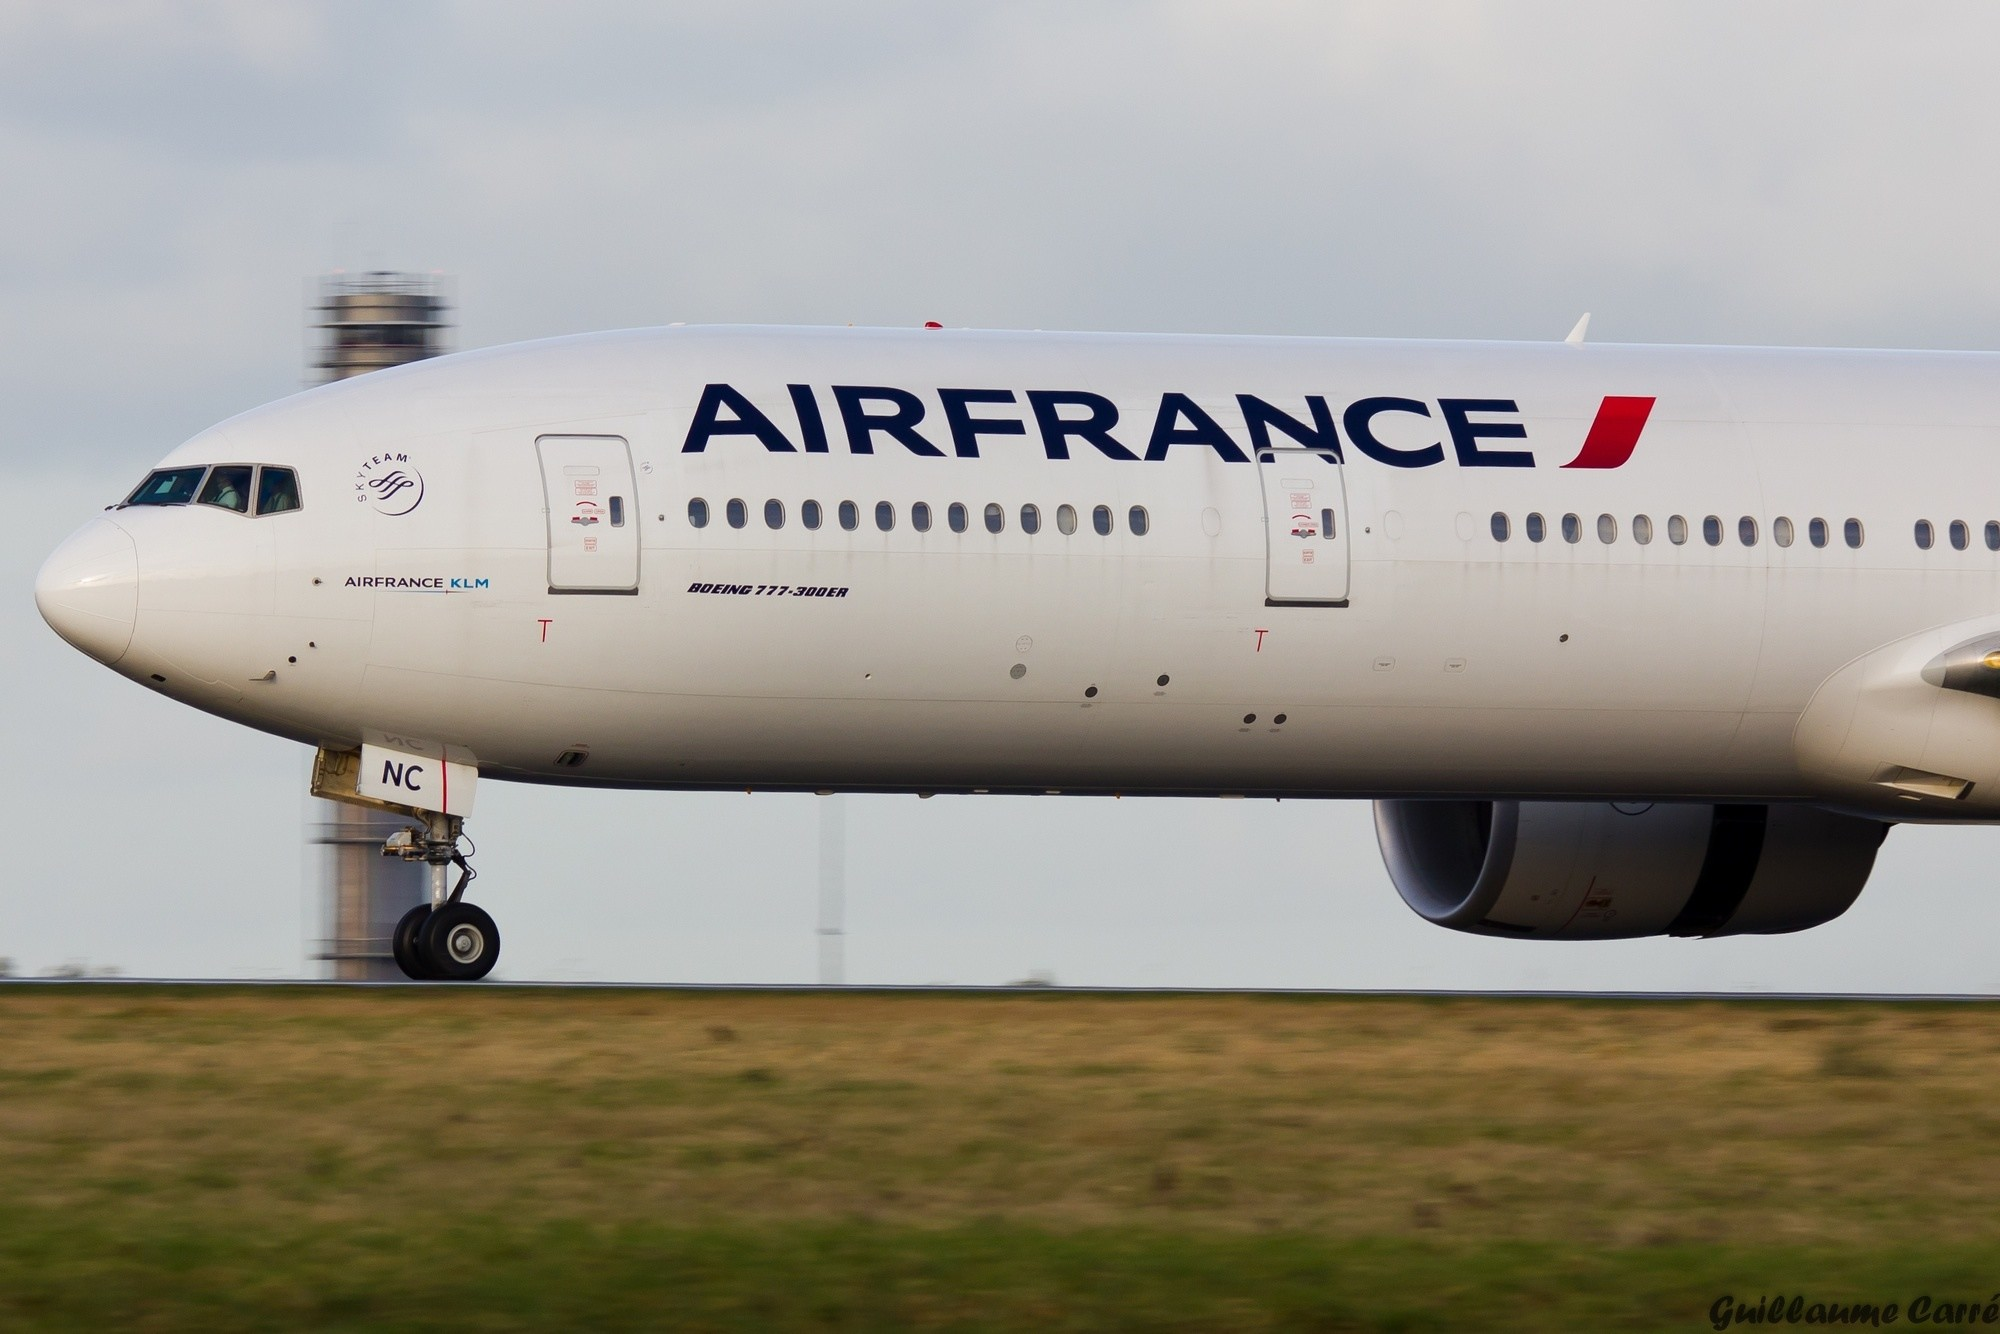 Boeing 777 Air France - Guillaume Carré